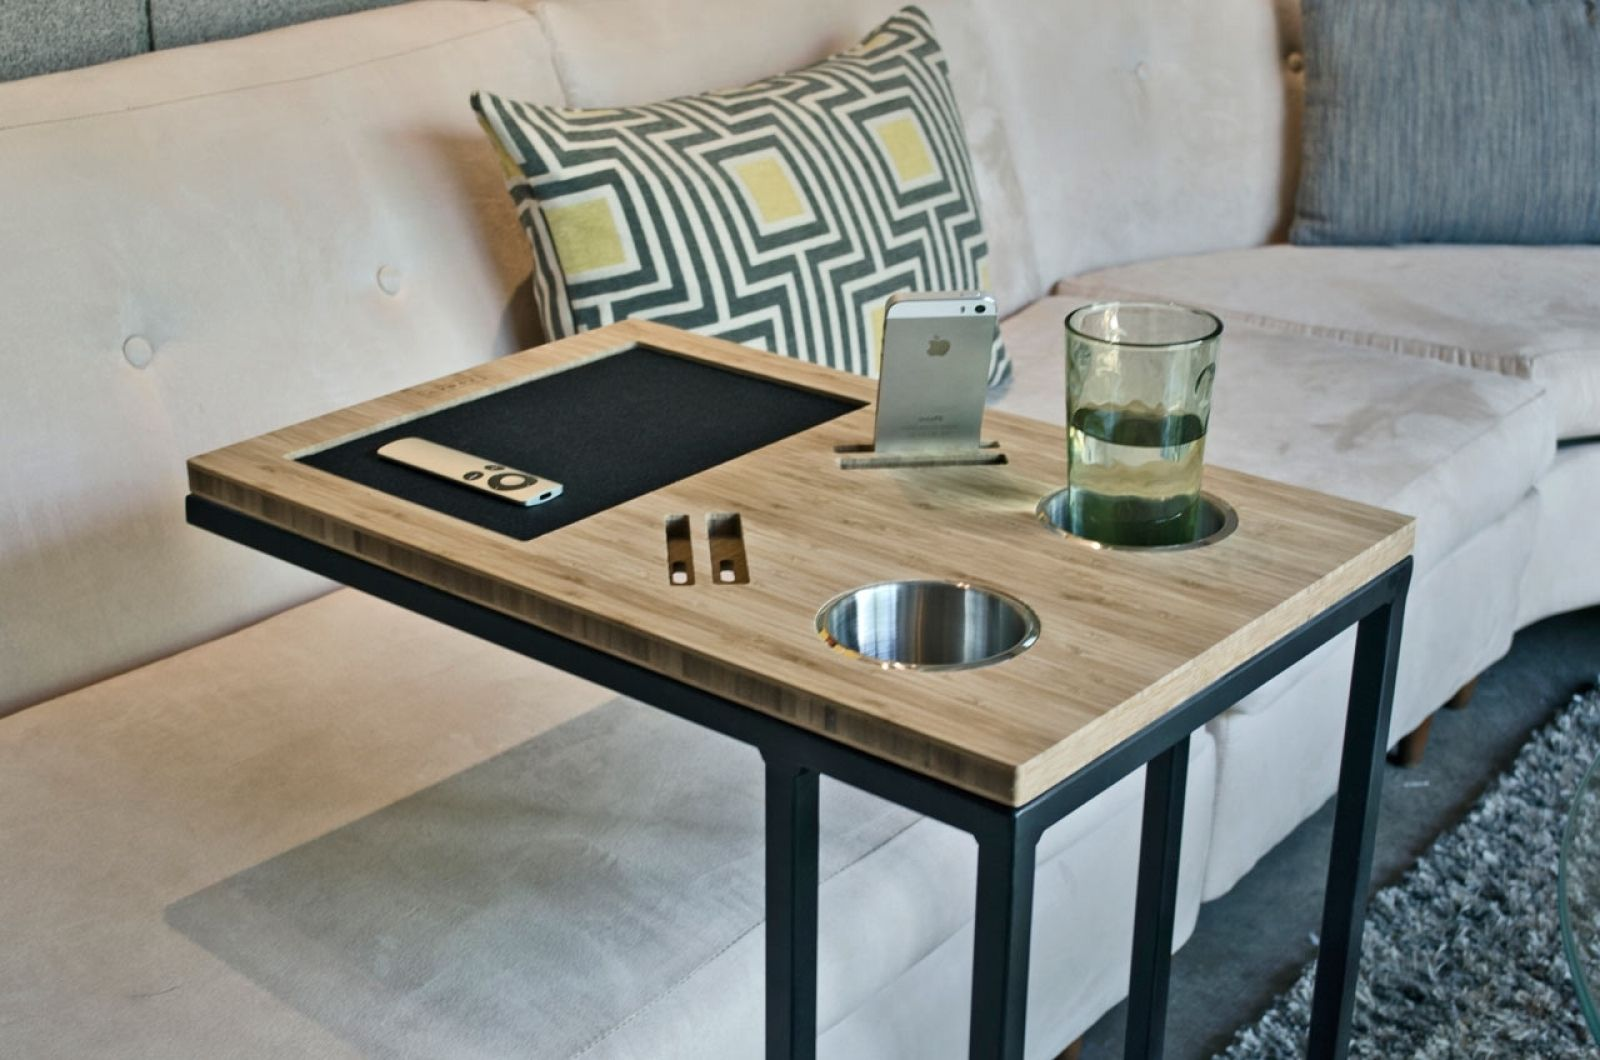 Ikea Sofa Tables The Best Way To Furnish Your Home Elegantly And